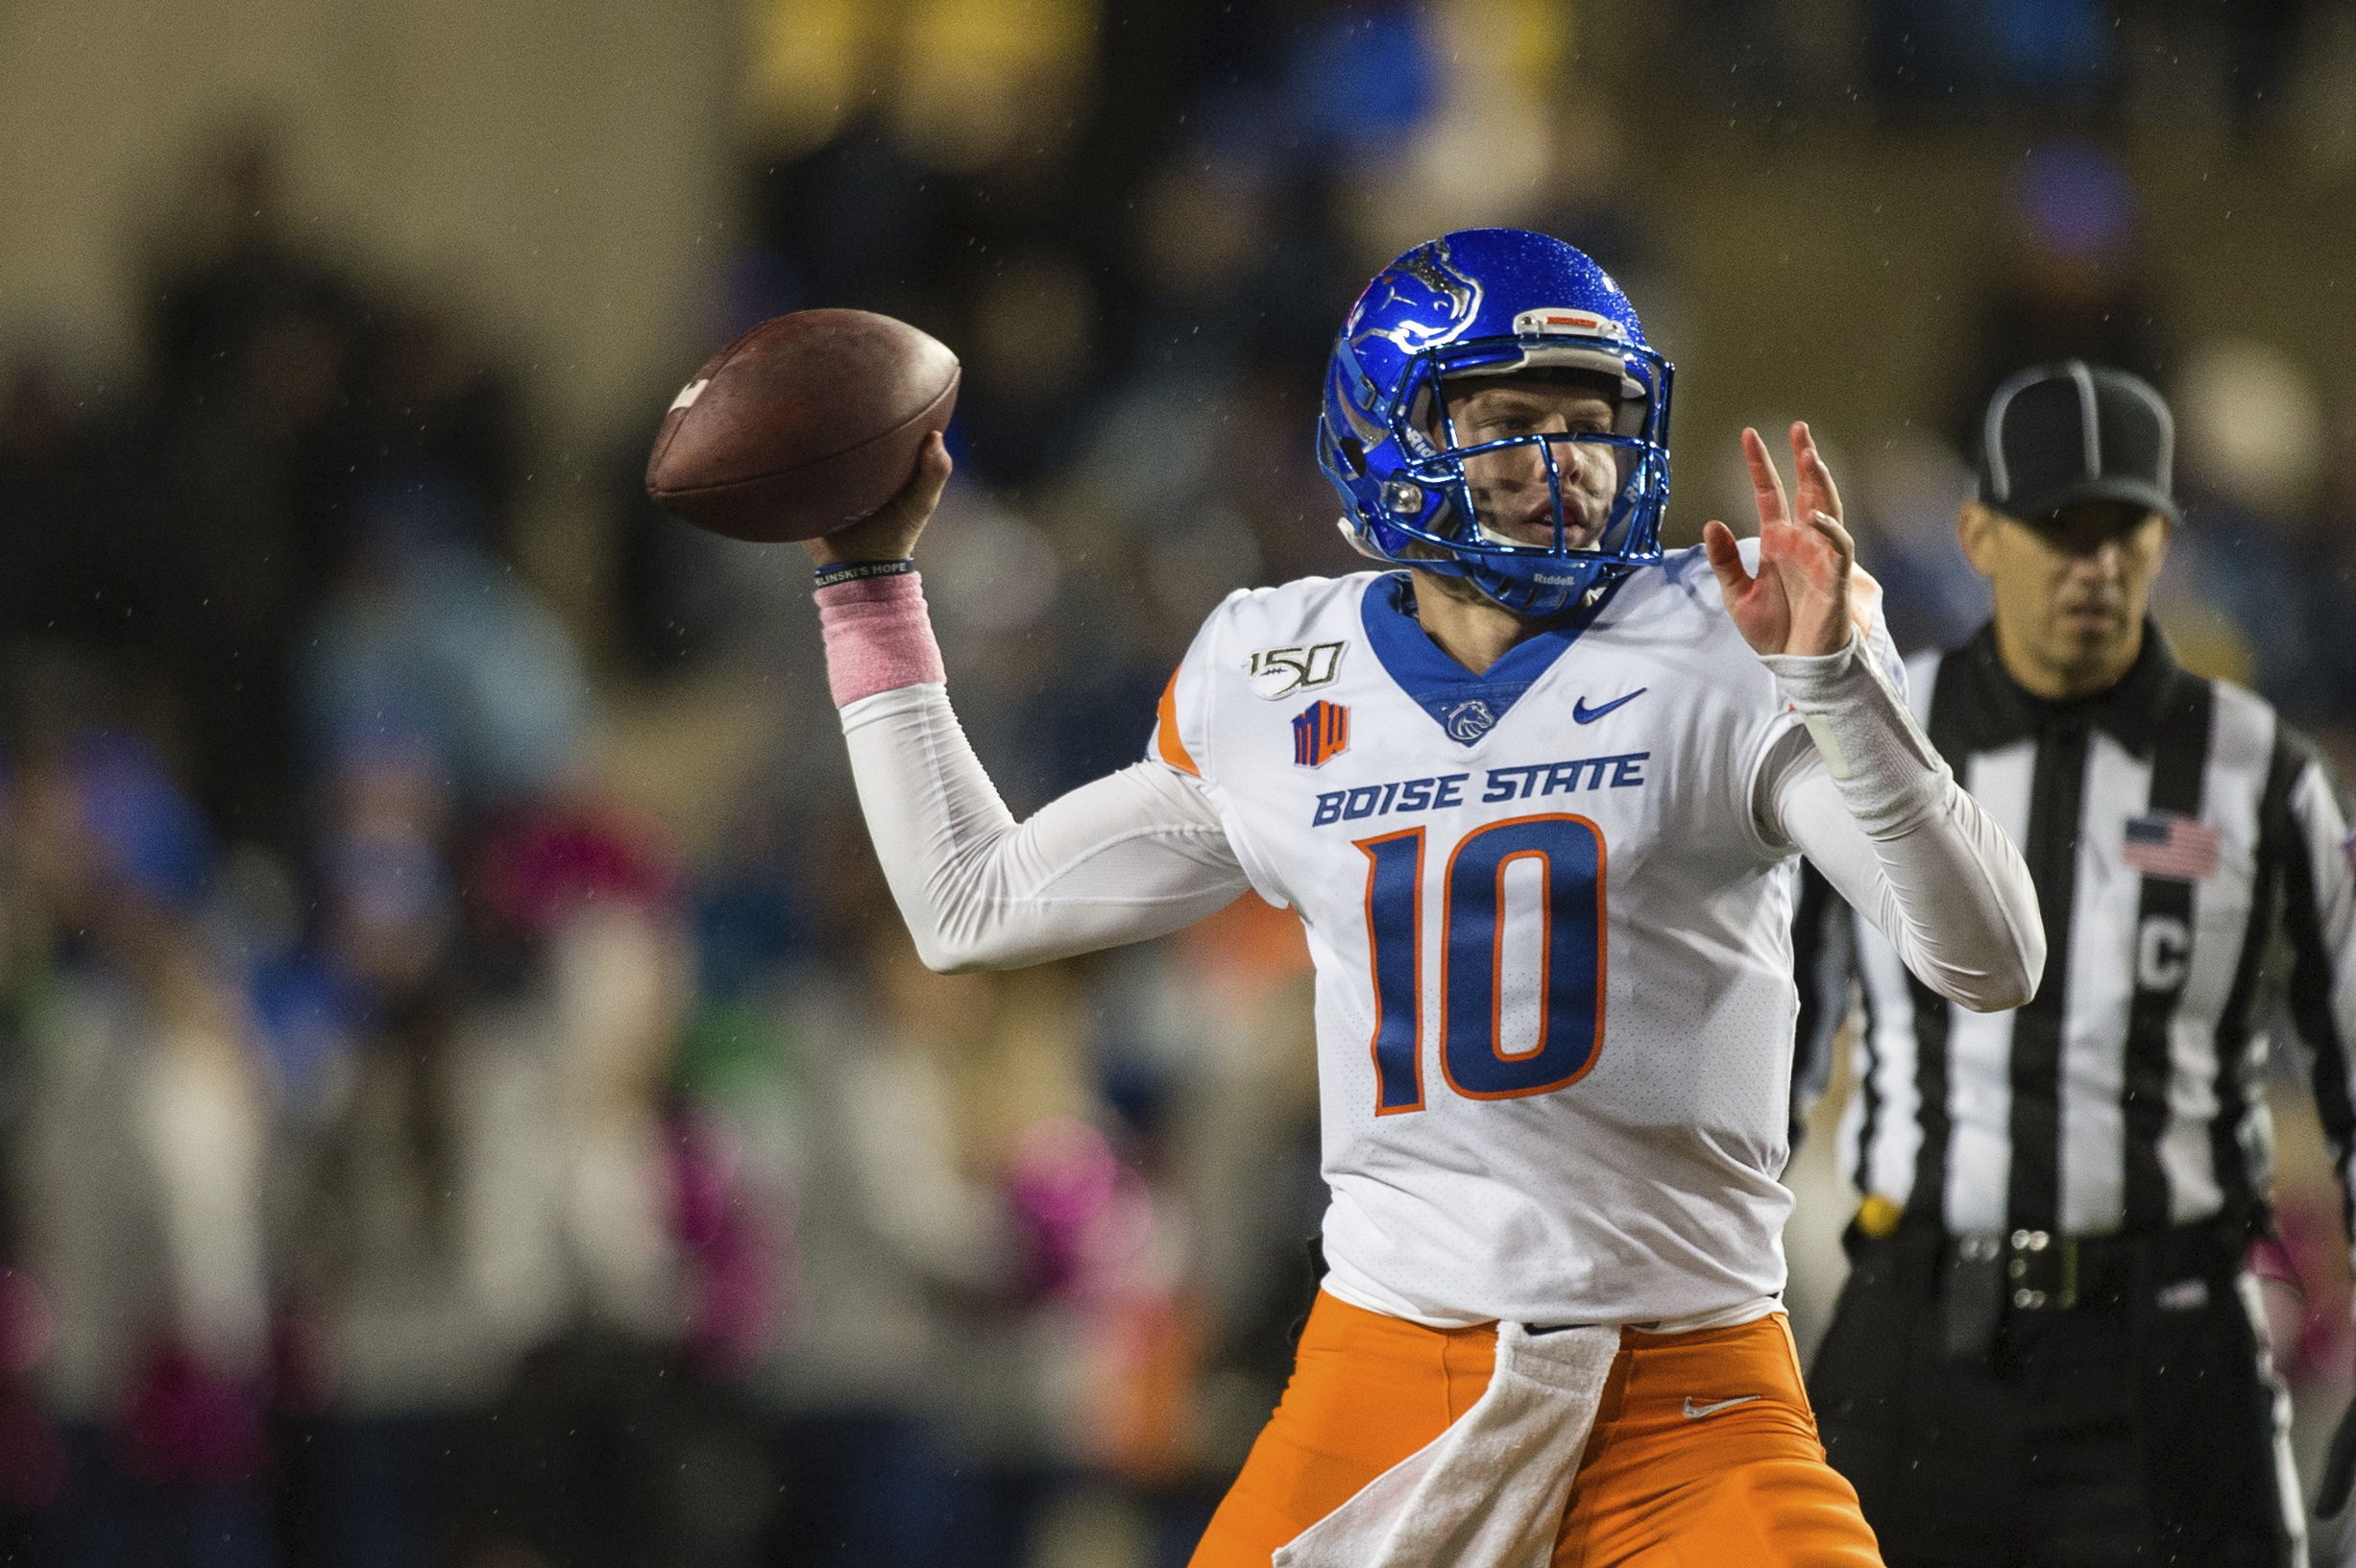 No. 21 Boise State looks to bounce back vs San Jose State